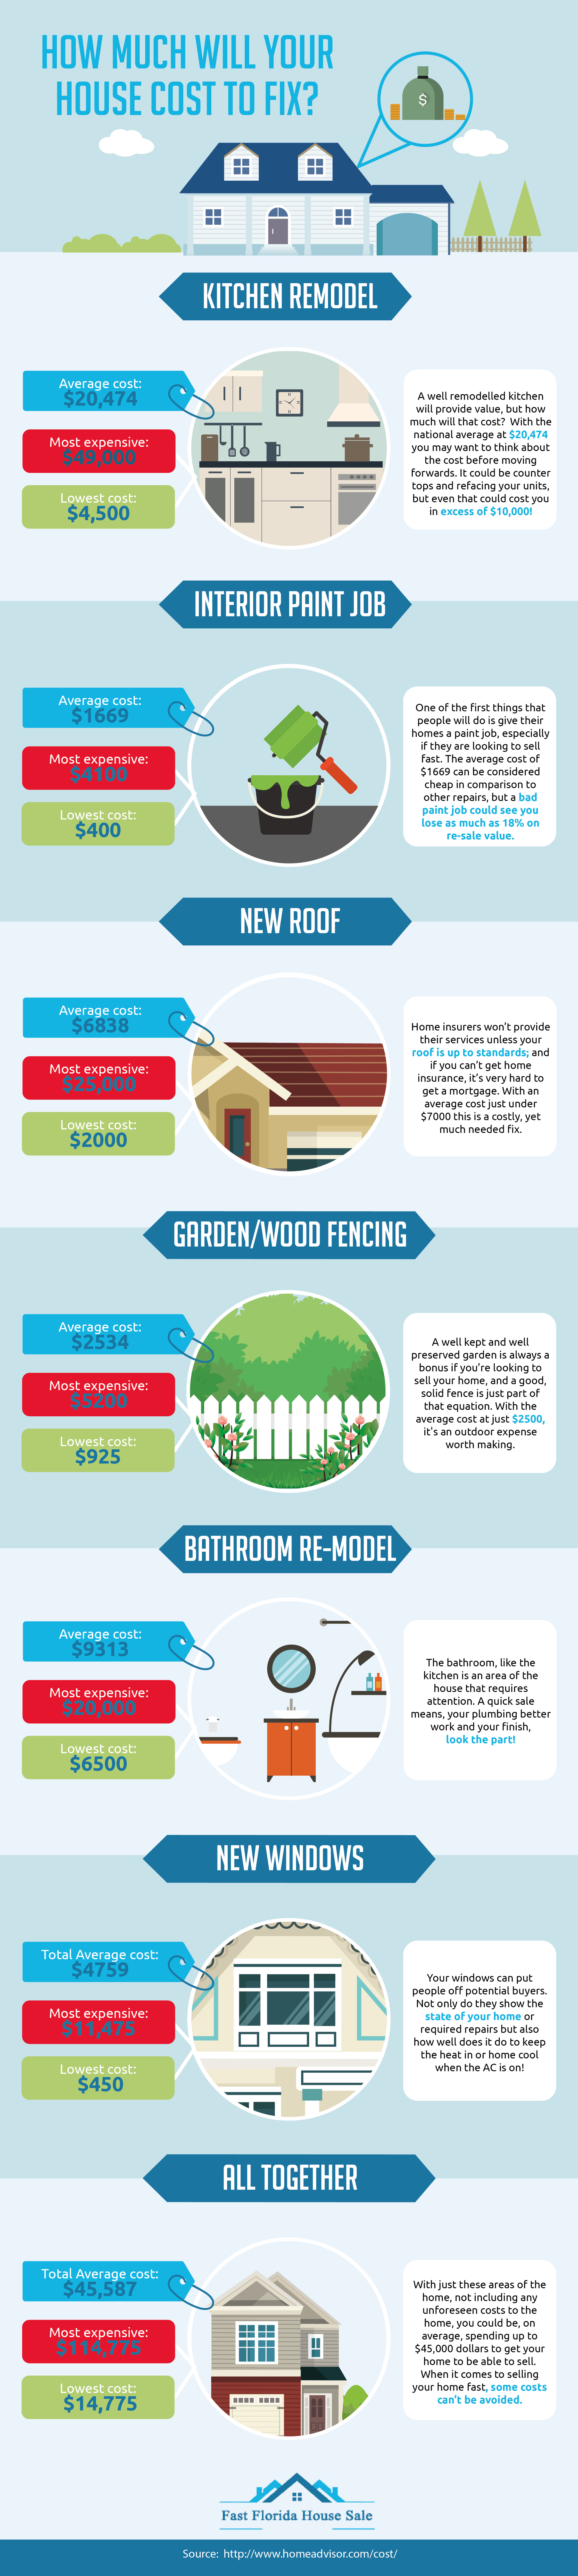 How much do i need to budget for house renovations for How much do renovations add to house value